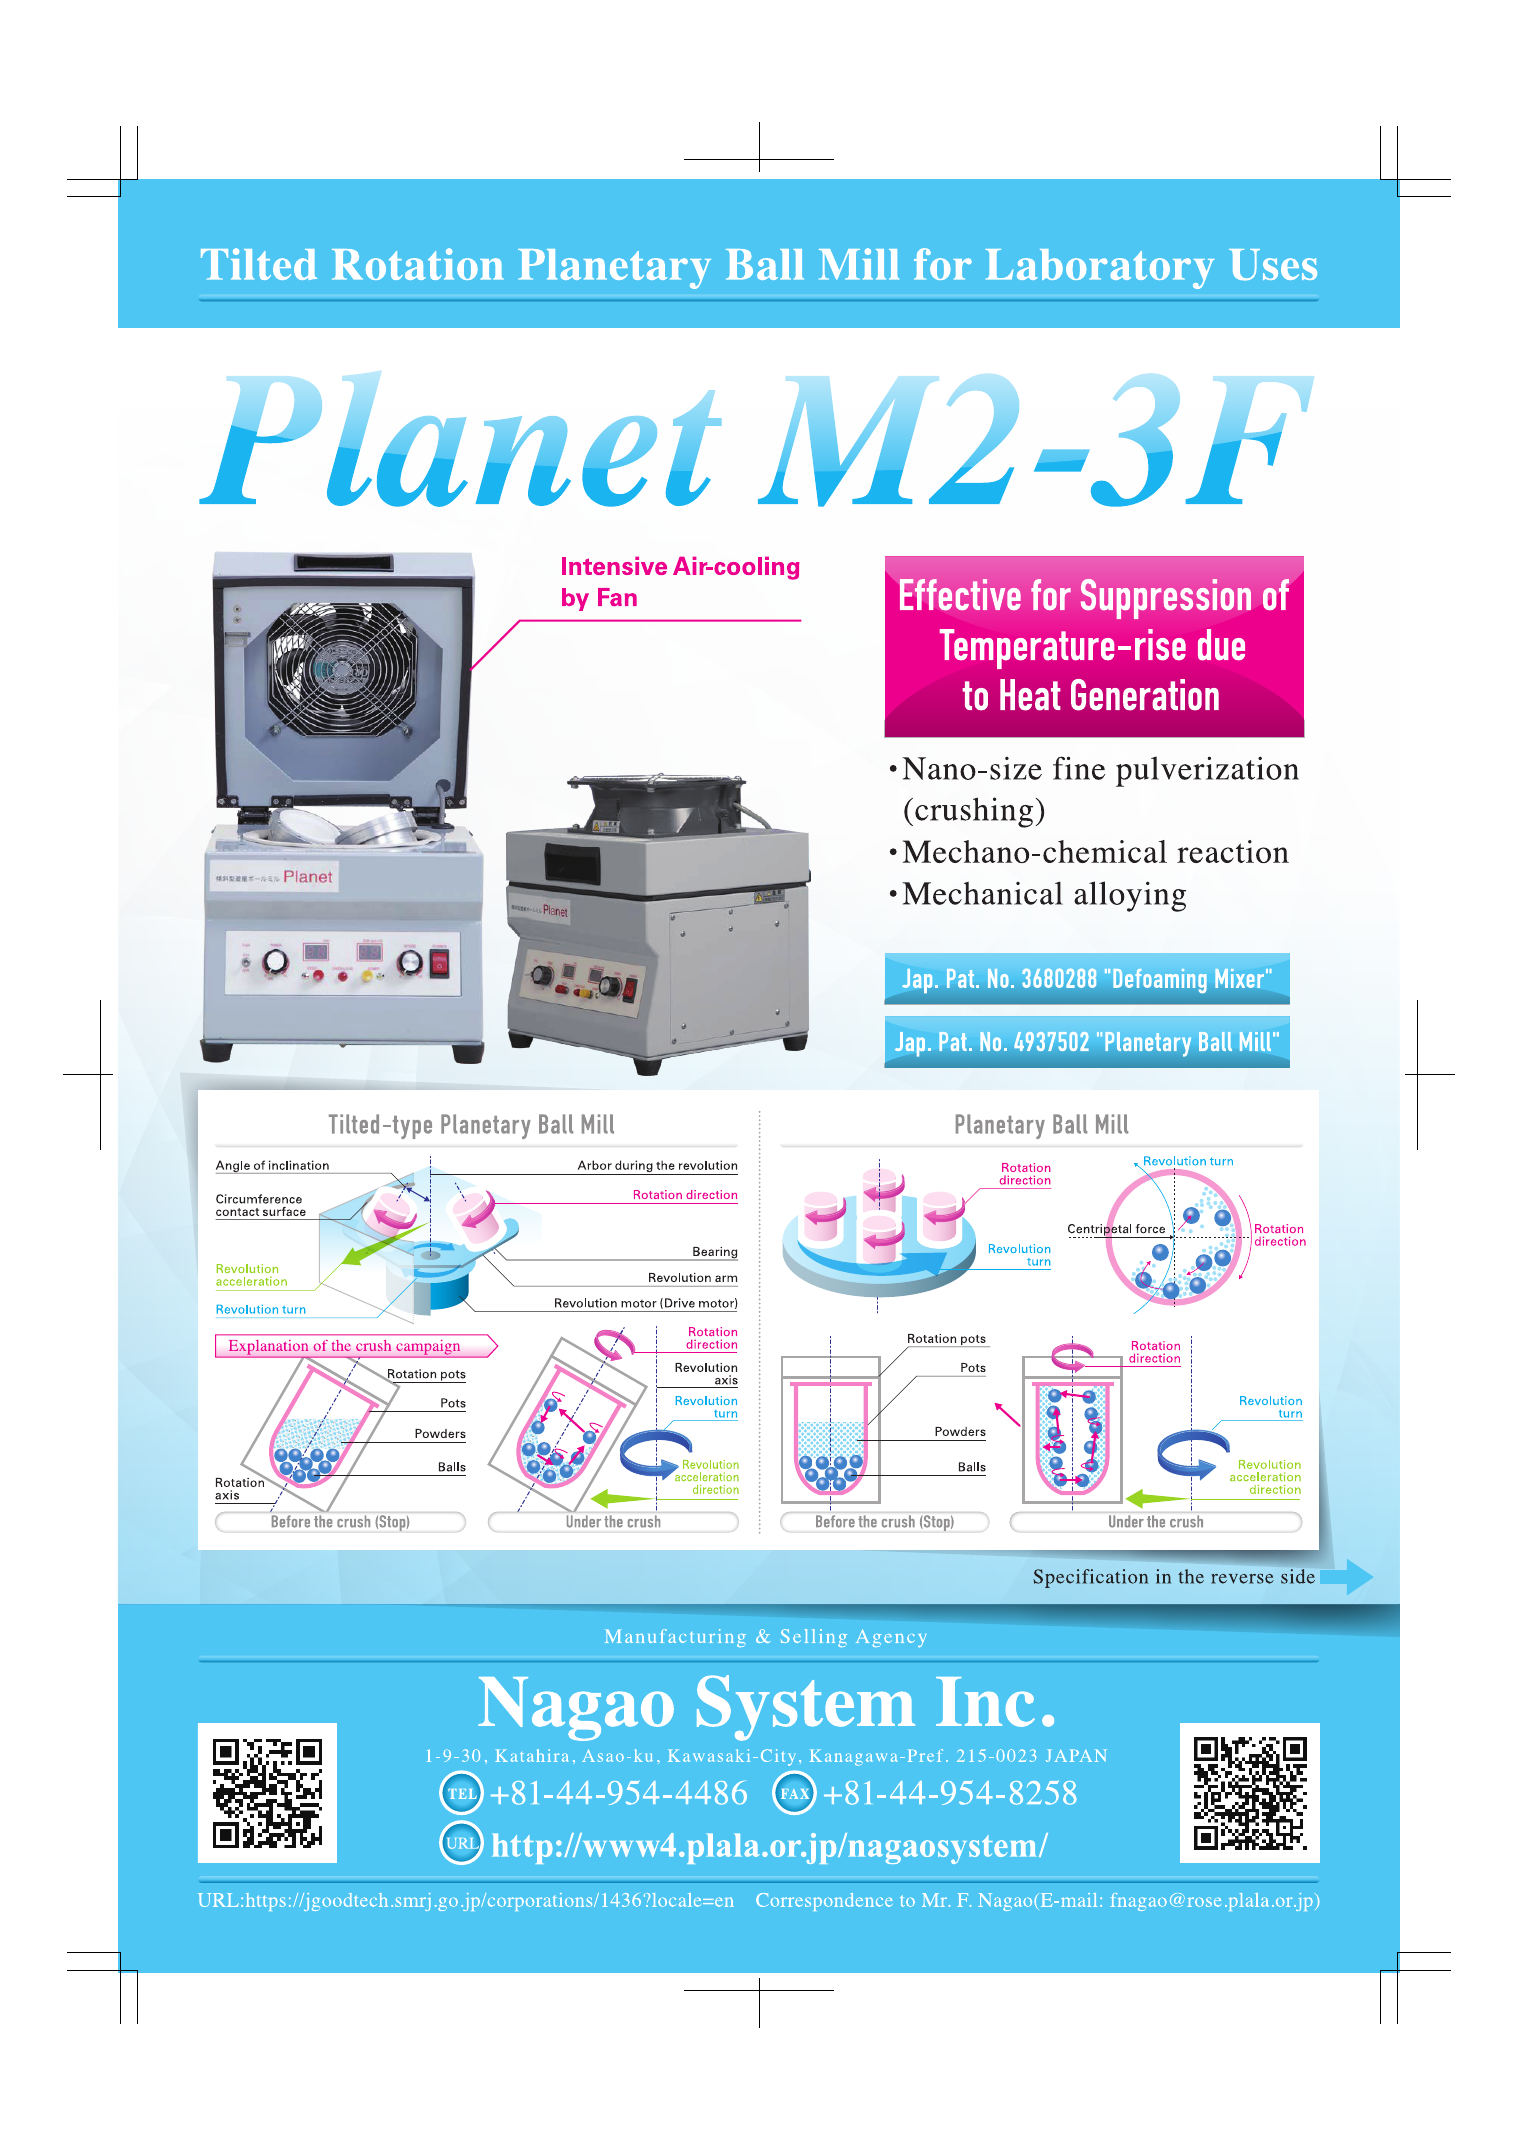 【(Small Size) Tilted Rotation Planetary Ball Mill「Planet M2-3F」】